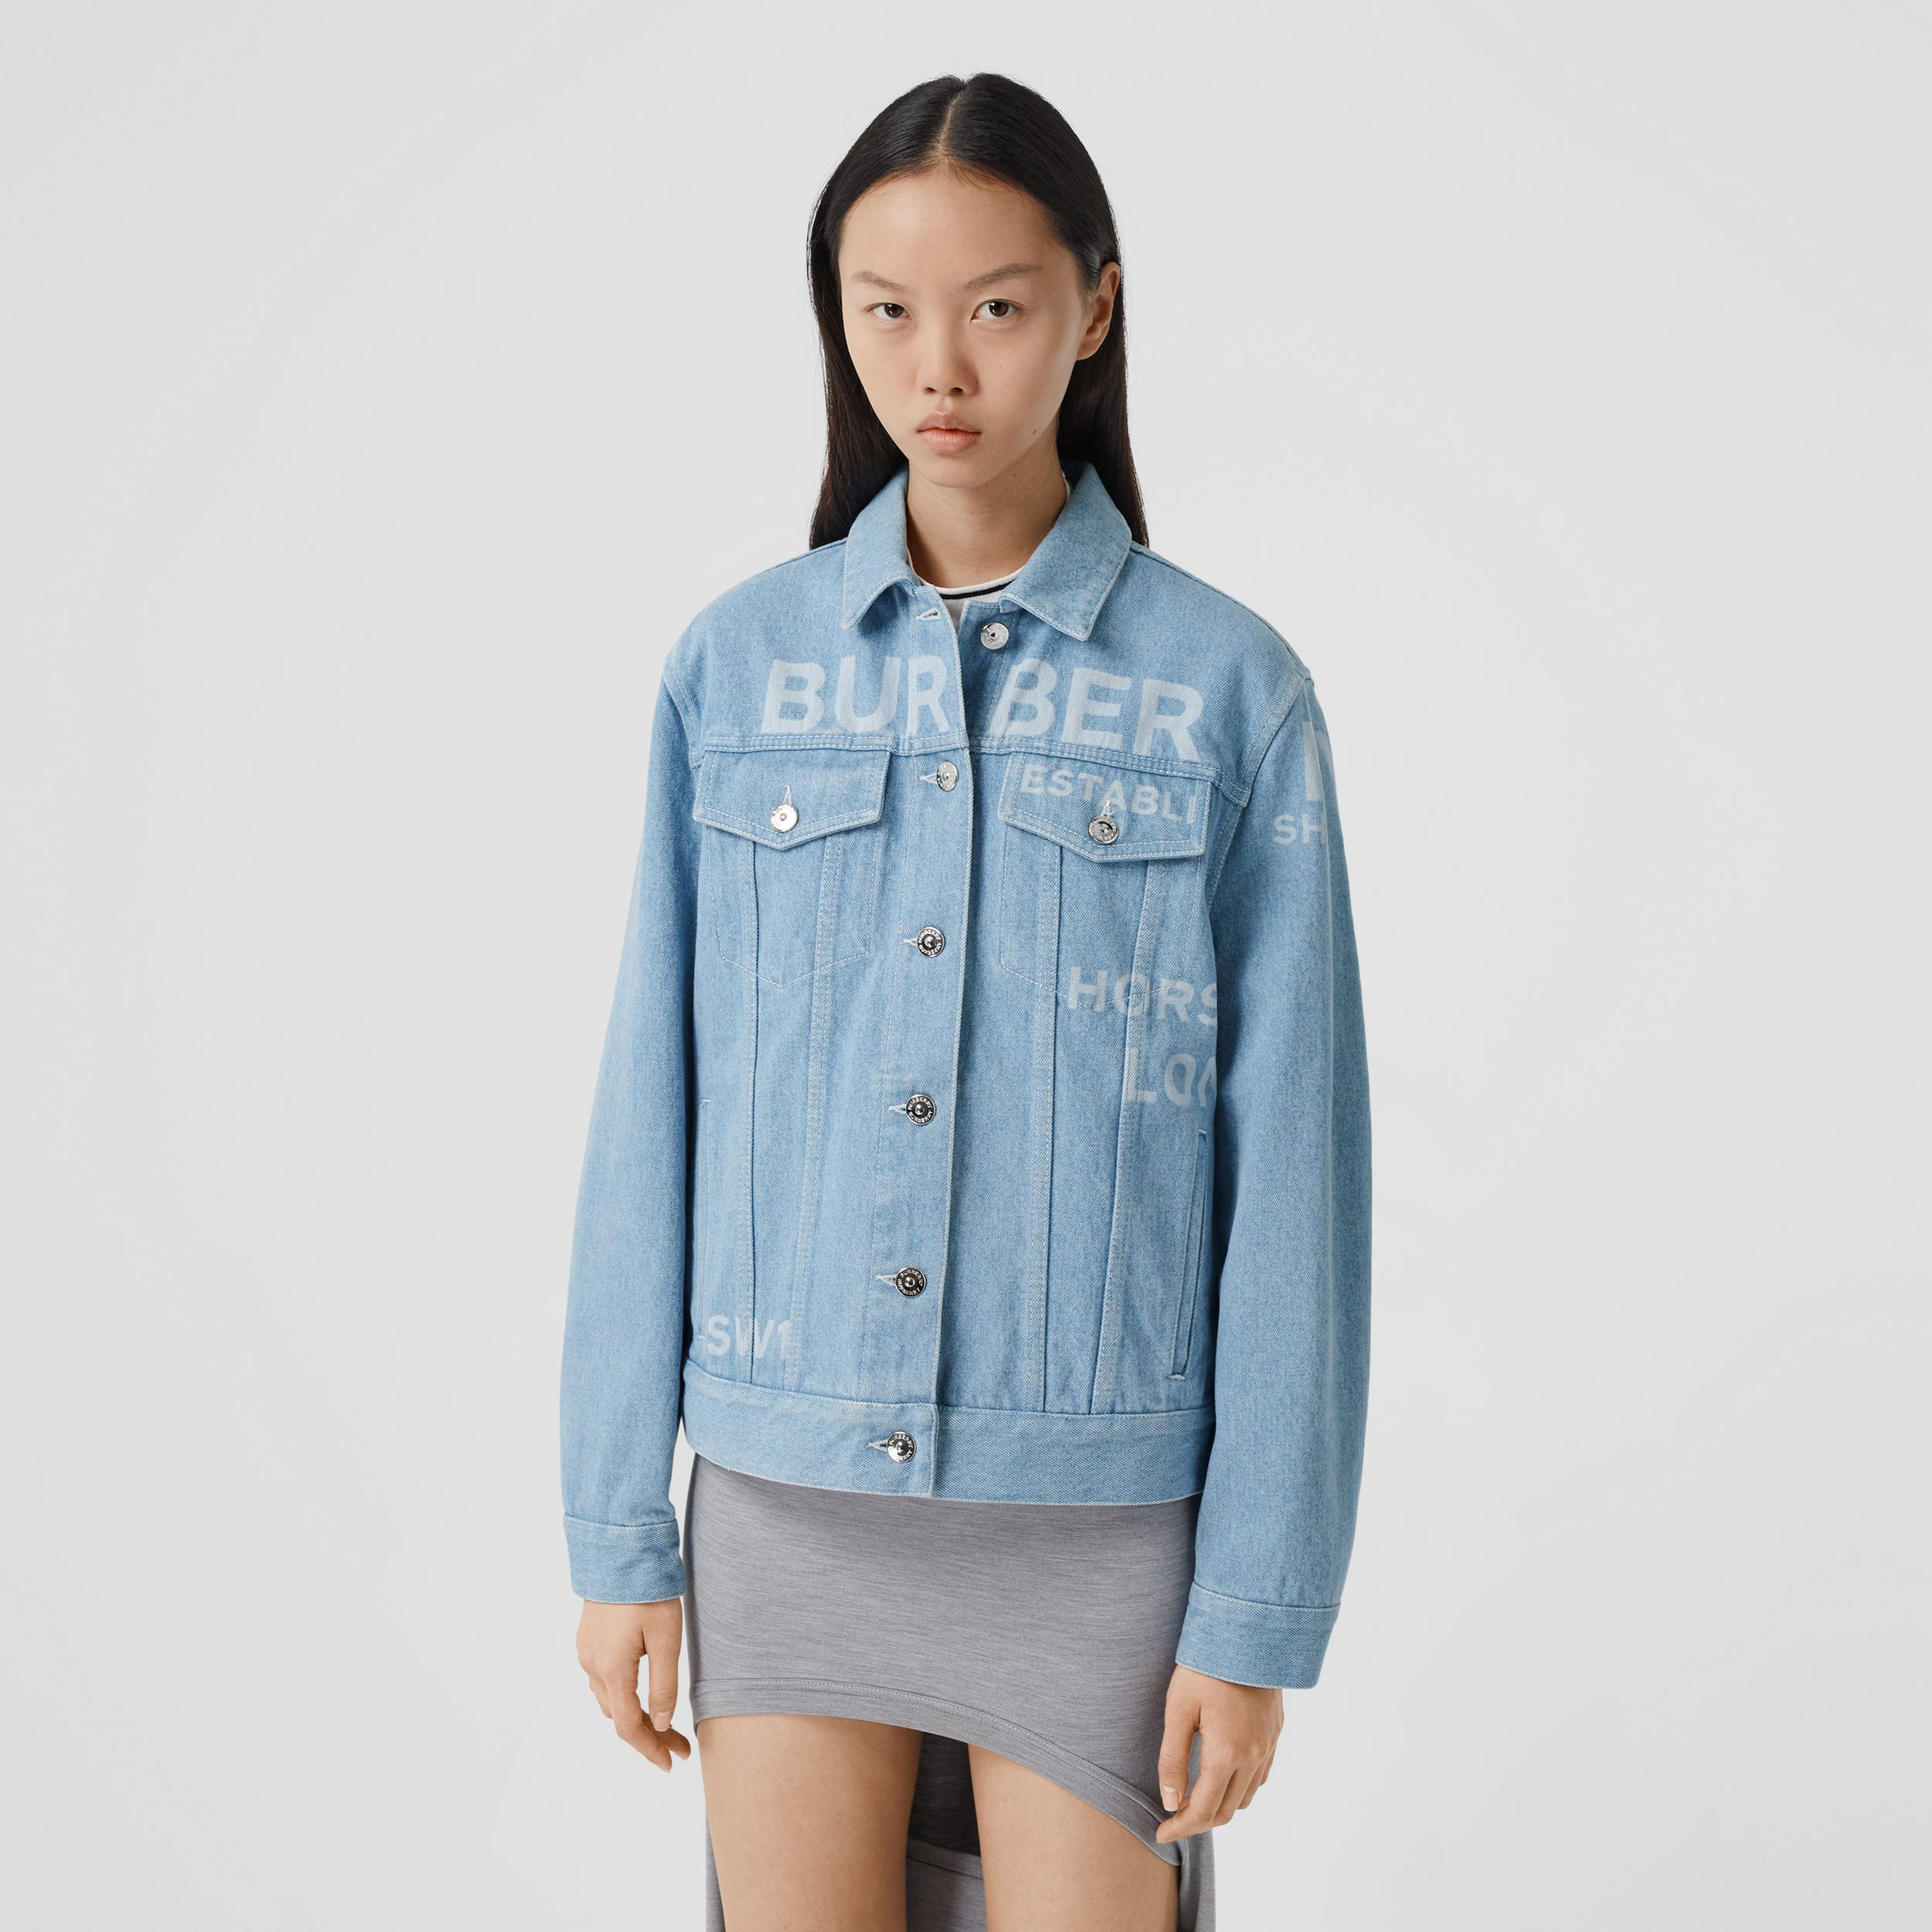 Horseferry Print Bleached Denim Jacket in Light Indigo - Women | Burberry - 1